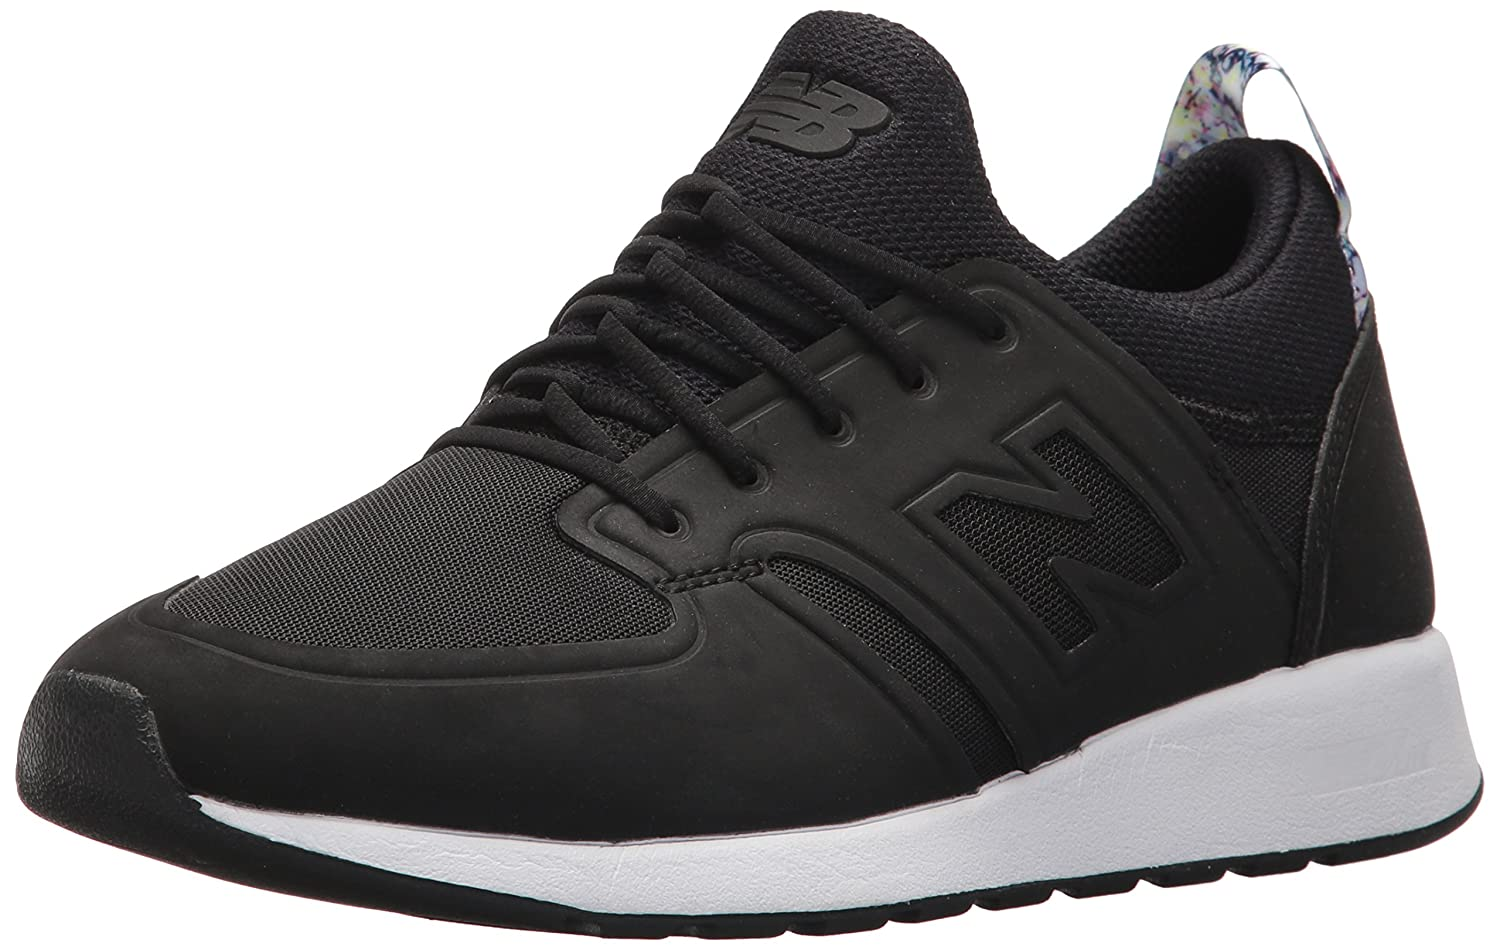 New Balance Women's 420 Sneaker B0725YG31M 95 D US|Black/Black